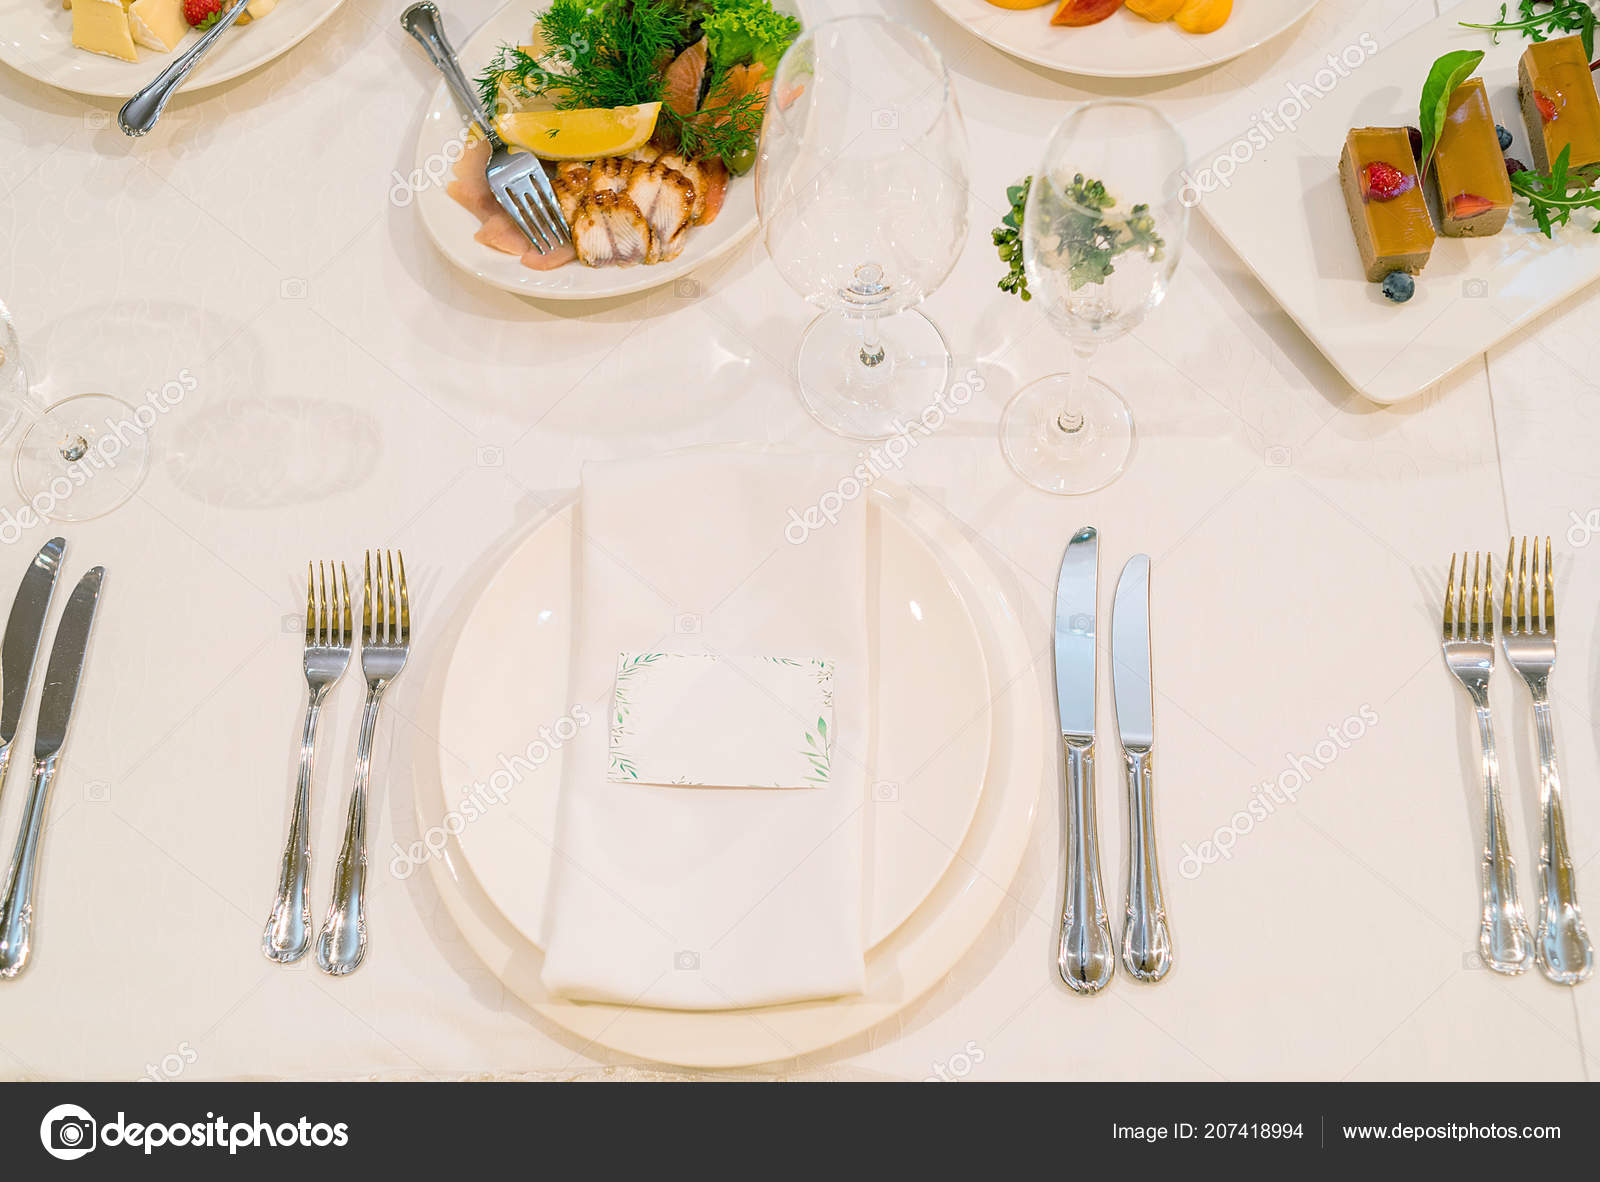 Dinner Place Setting Blank Guest Card White Table Napkin Wedding Stock Photo Image By C D Duda 207418994